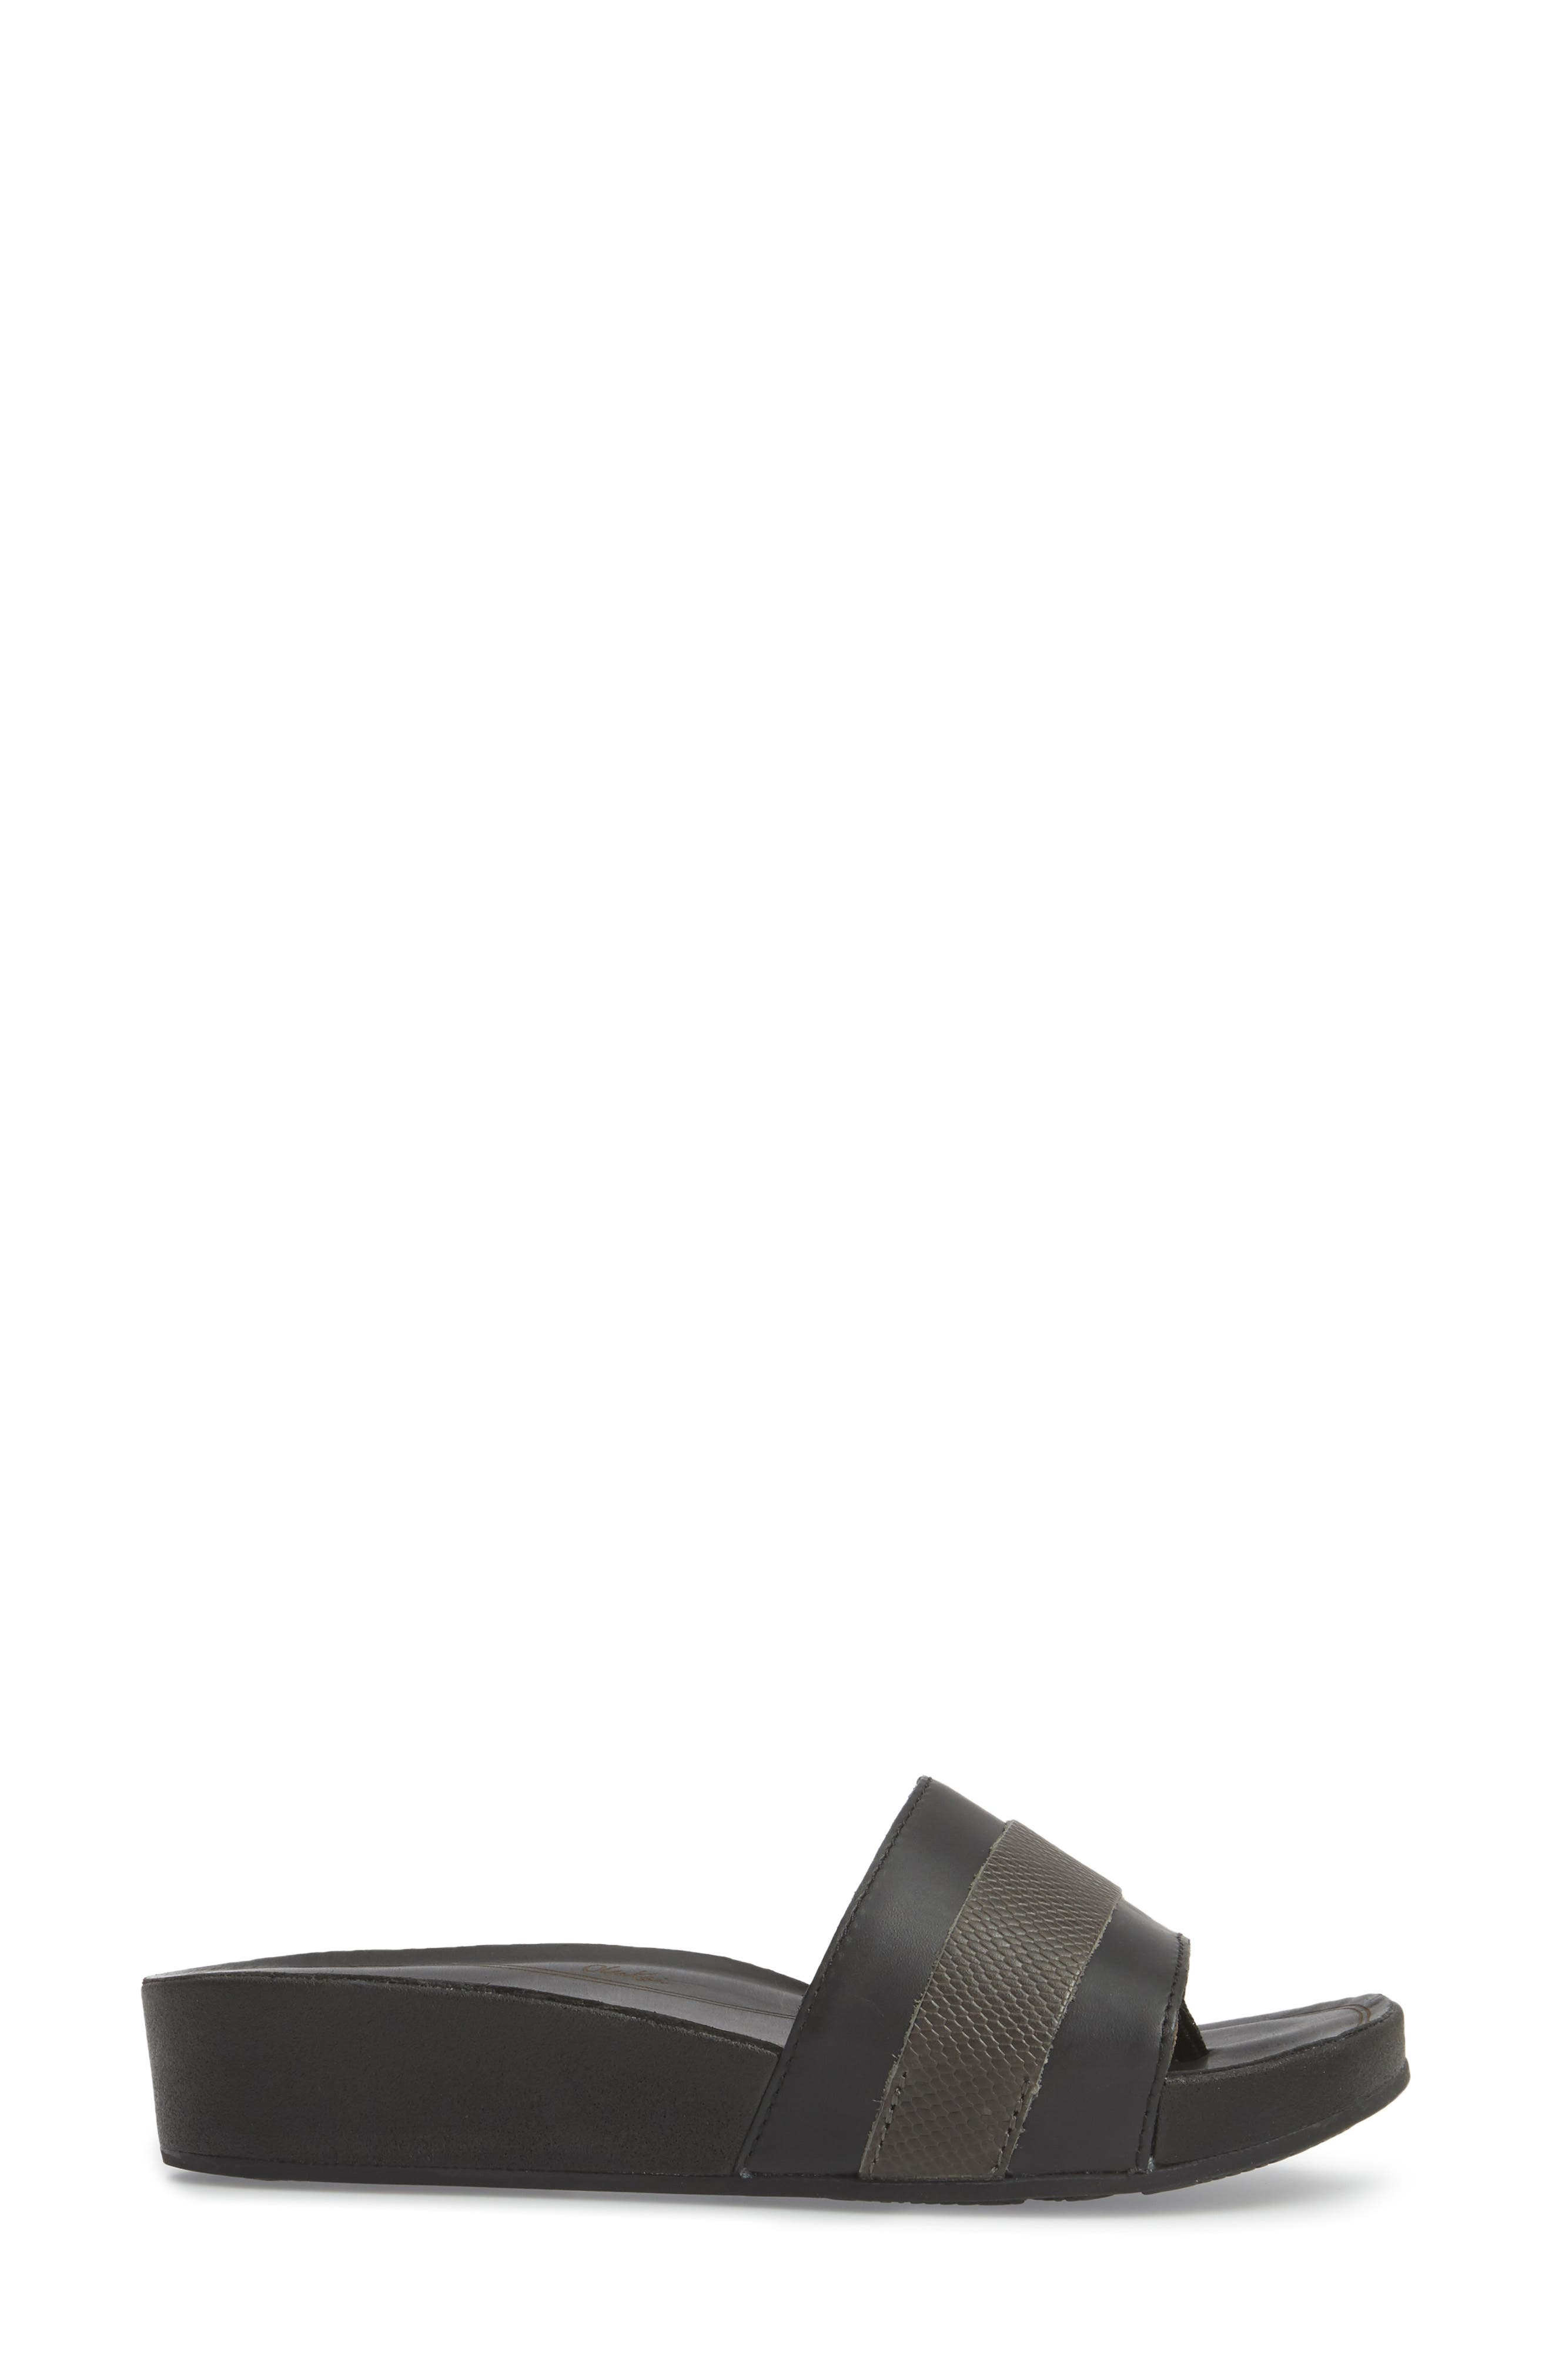 Ola Huna Wedge Sandal,                             Alternate thumbnail 3, color,                             020